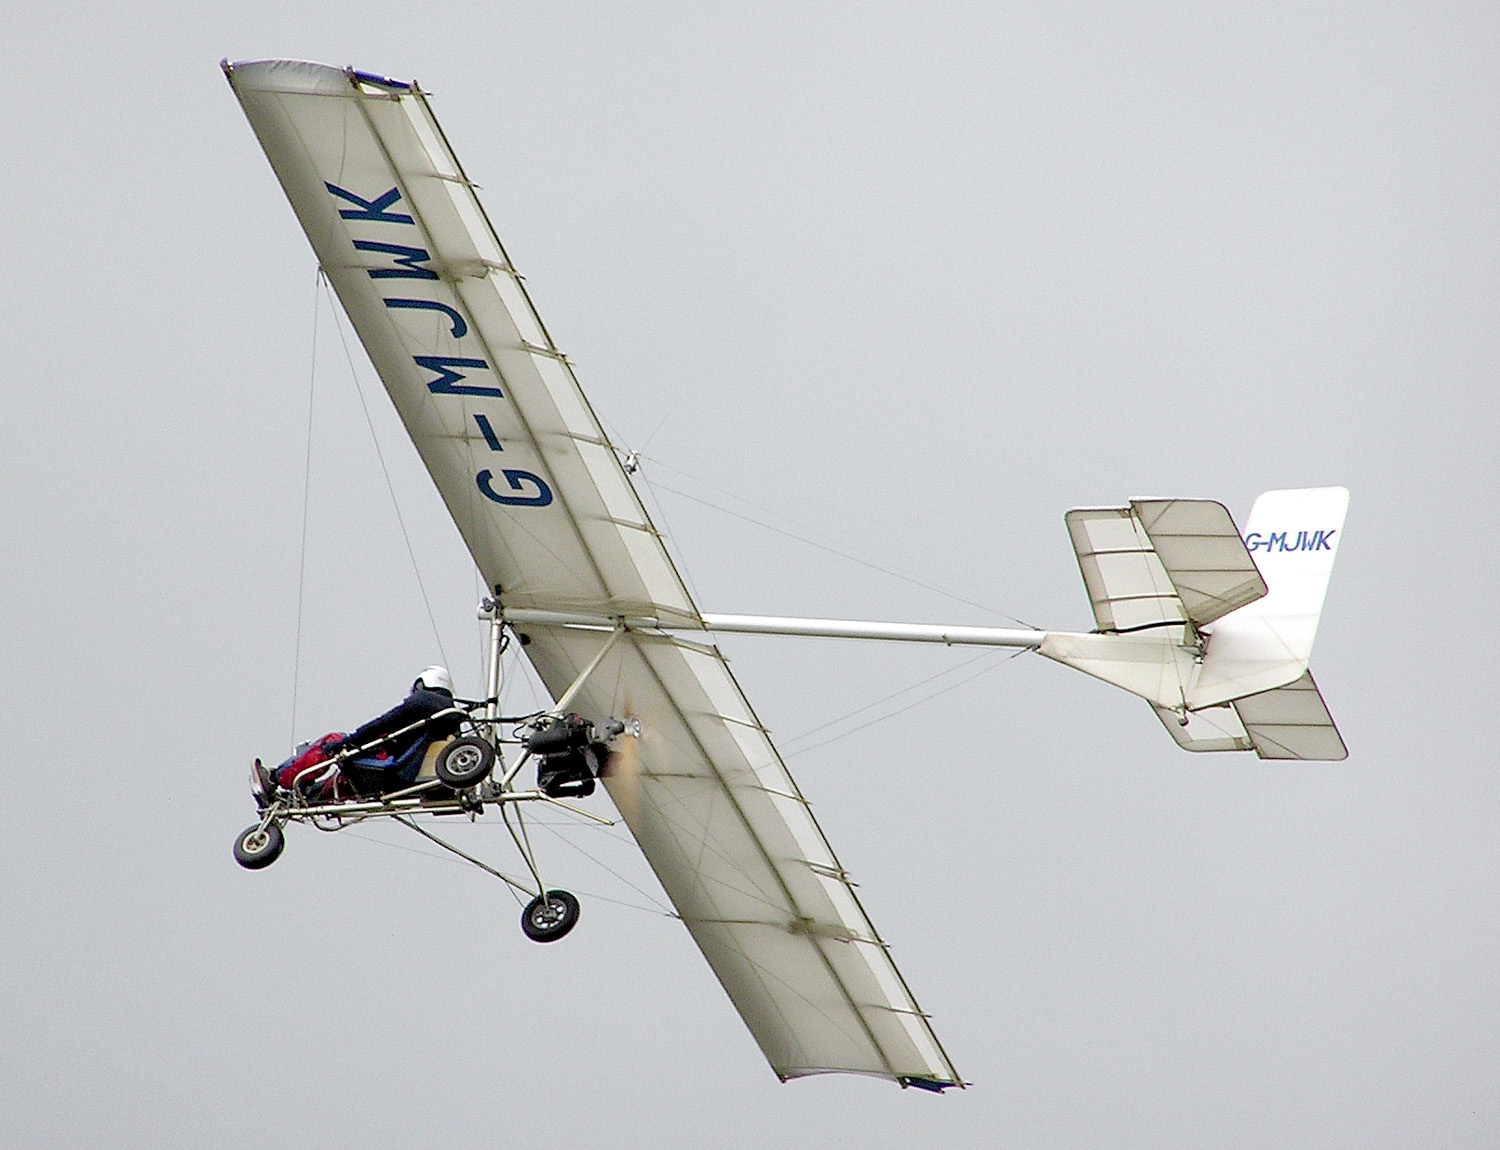 Ultralight aviation - Wikipedia